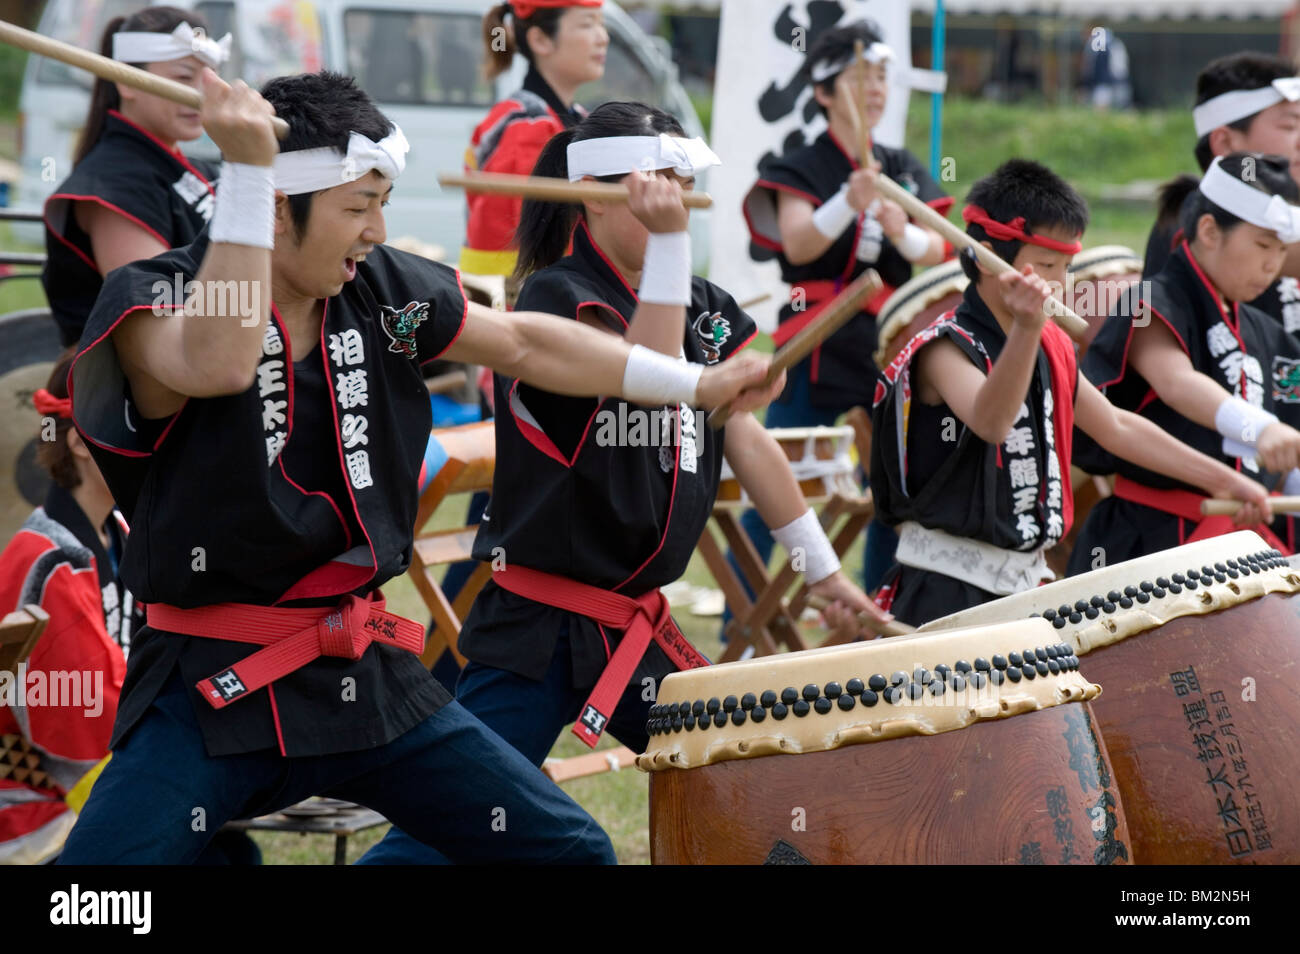 Energetic group of drummers beating Japanese taiko drums during an outdoor performance, Japan - Stock Image